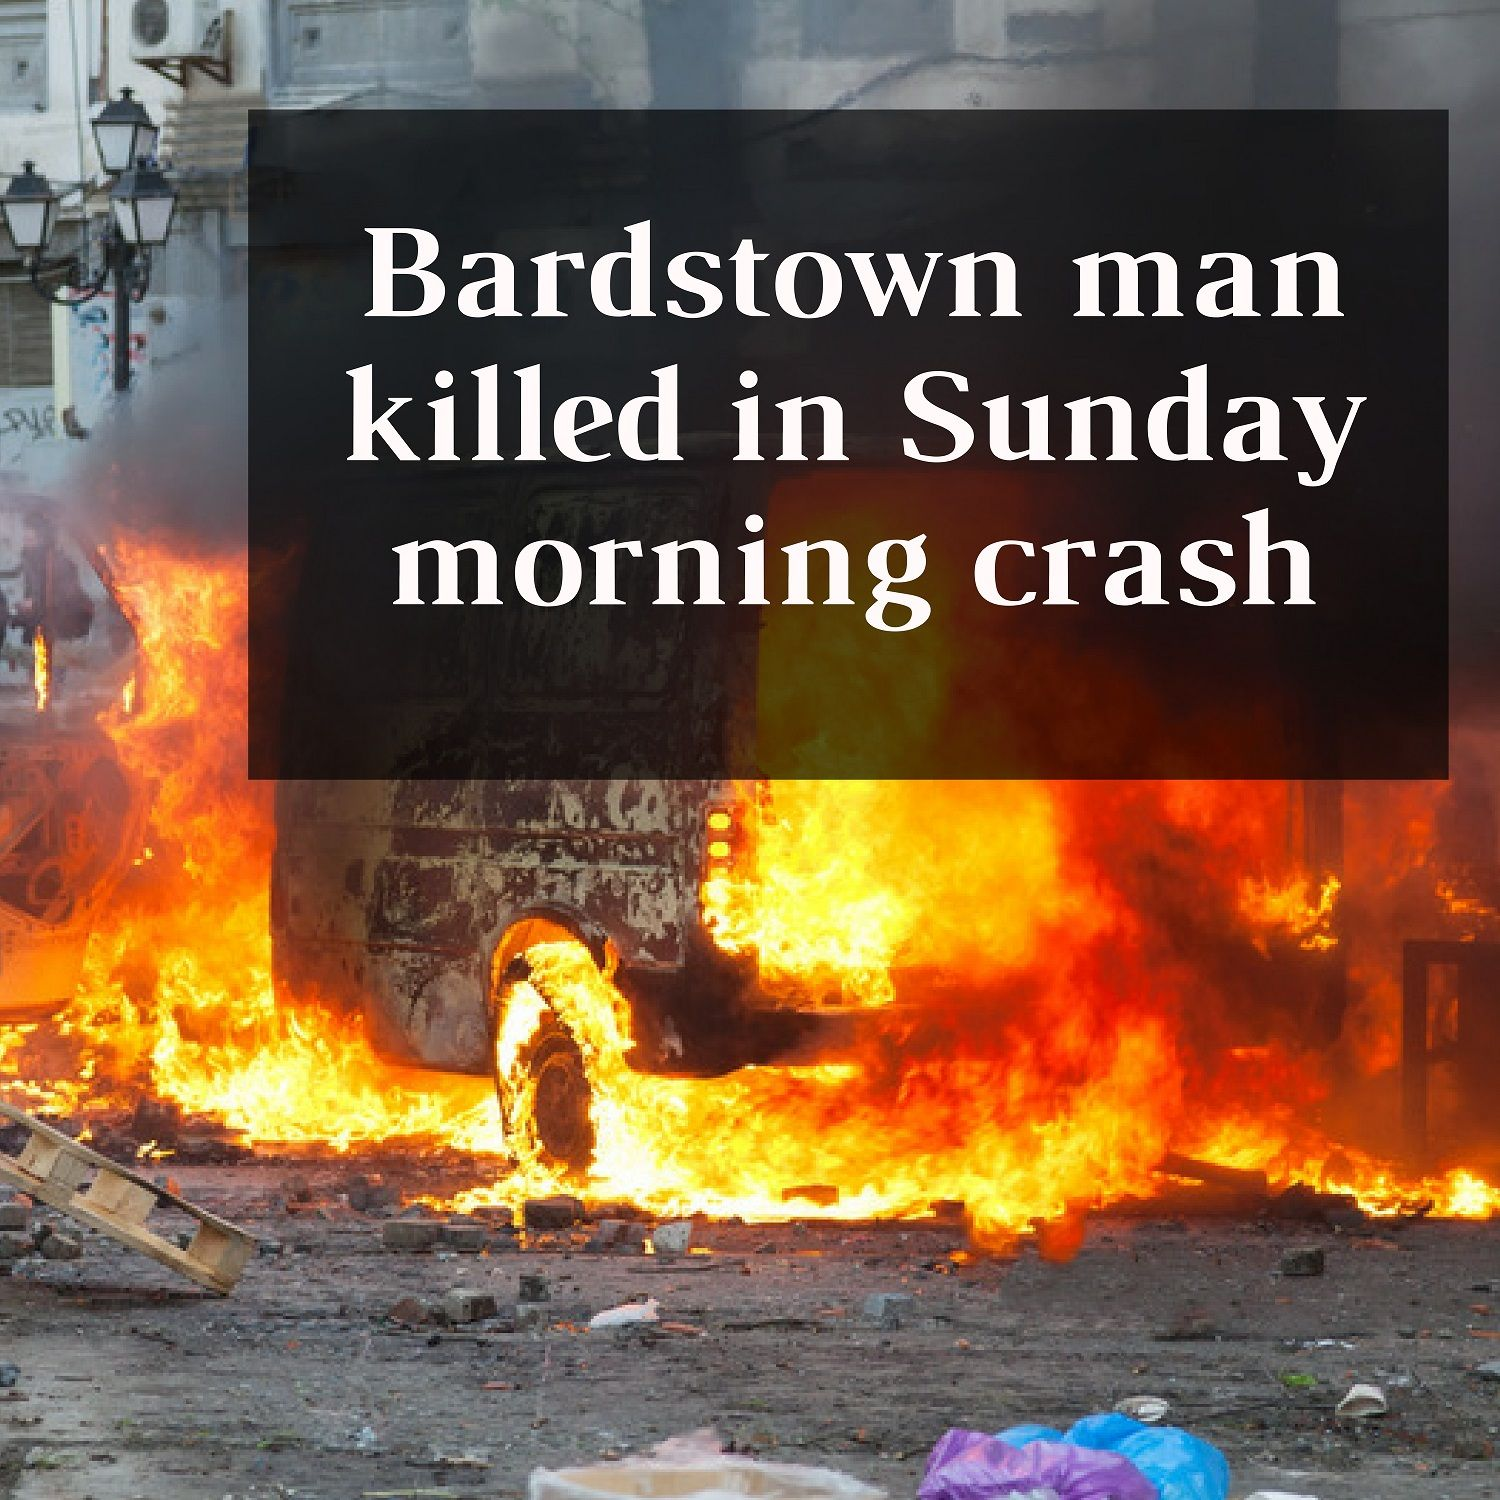 A vehicle accident killed a man (Tyler Kays, 24 years old) last Sunday morning in Bardstown, KY. #AutoAccidentLawyer #AutoAccidentAttorneyinKentucky